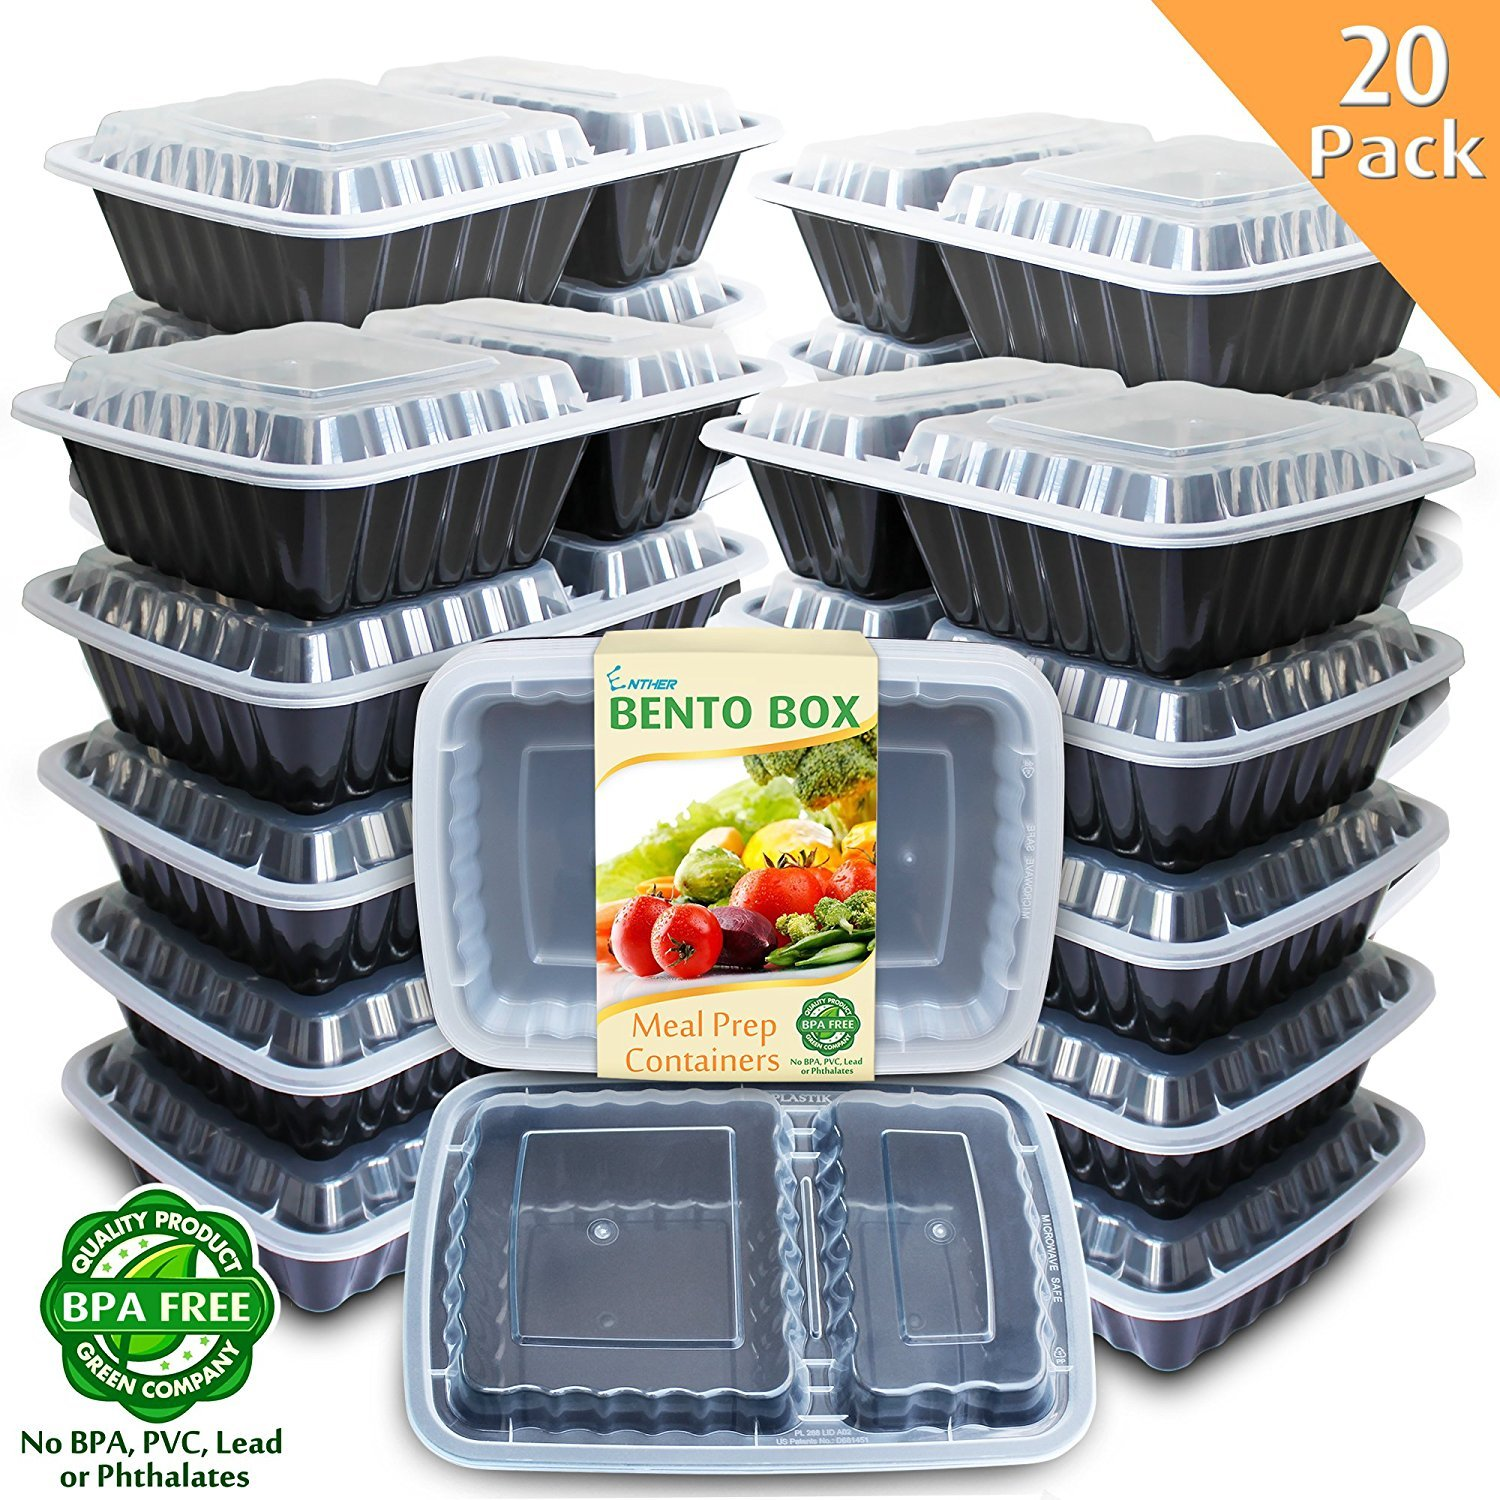 Enther Meal Prep Containers [20 Pack] 2 Compartment with Lids, Food Storage Bento Box | BPA Free | Stackable | Reusable Lunch Boxes, Microwave/Dishwasher/Freezer Safe,Portion Control (32 oz) 2CPTX20